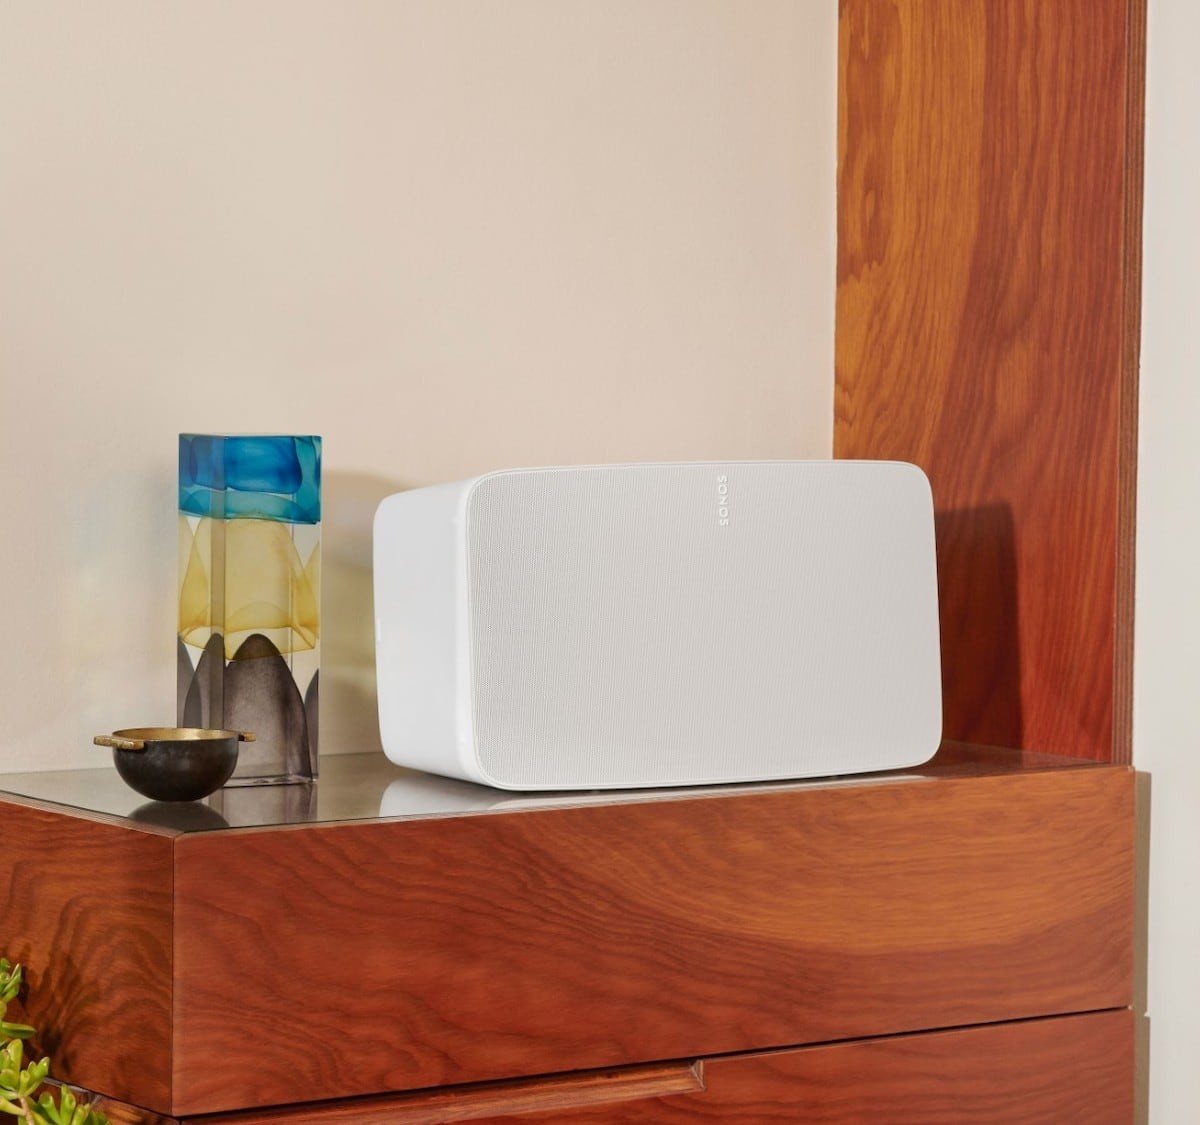 Sonos Five High-Fidelity Speaker is a newer version of the Play:5